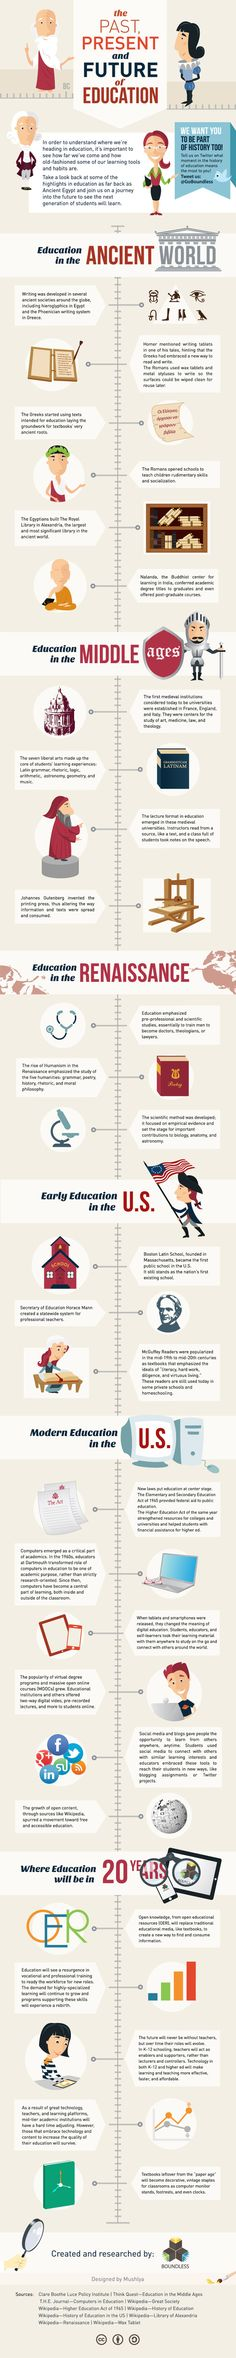 The past, present and future of education. Do you agree or disagree with the future of education, as outlined by this infographic?